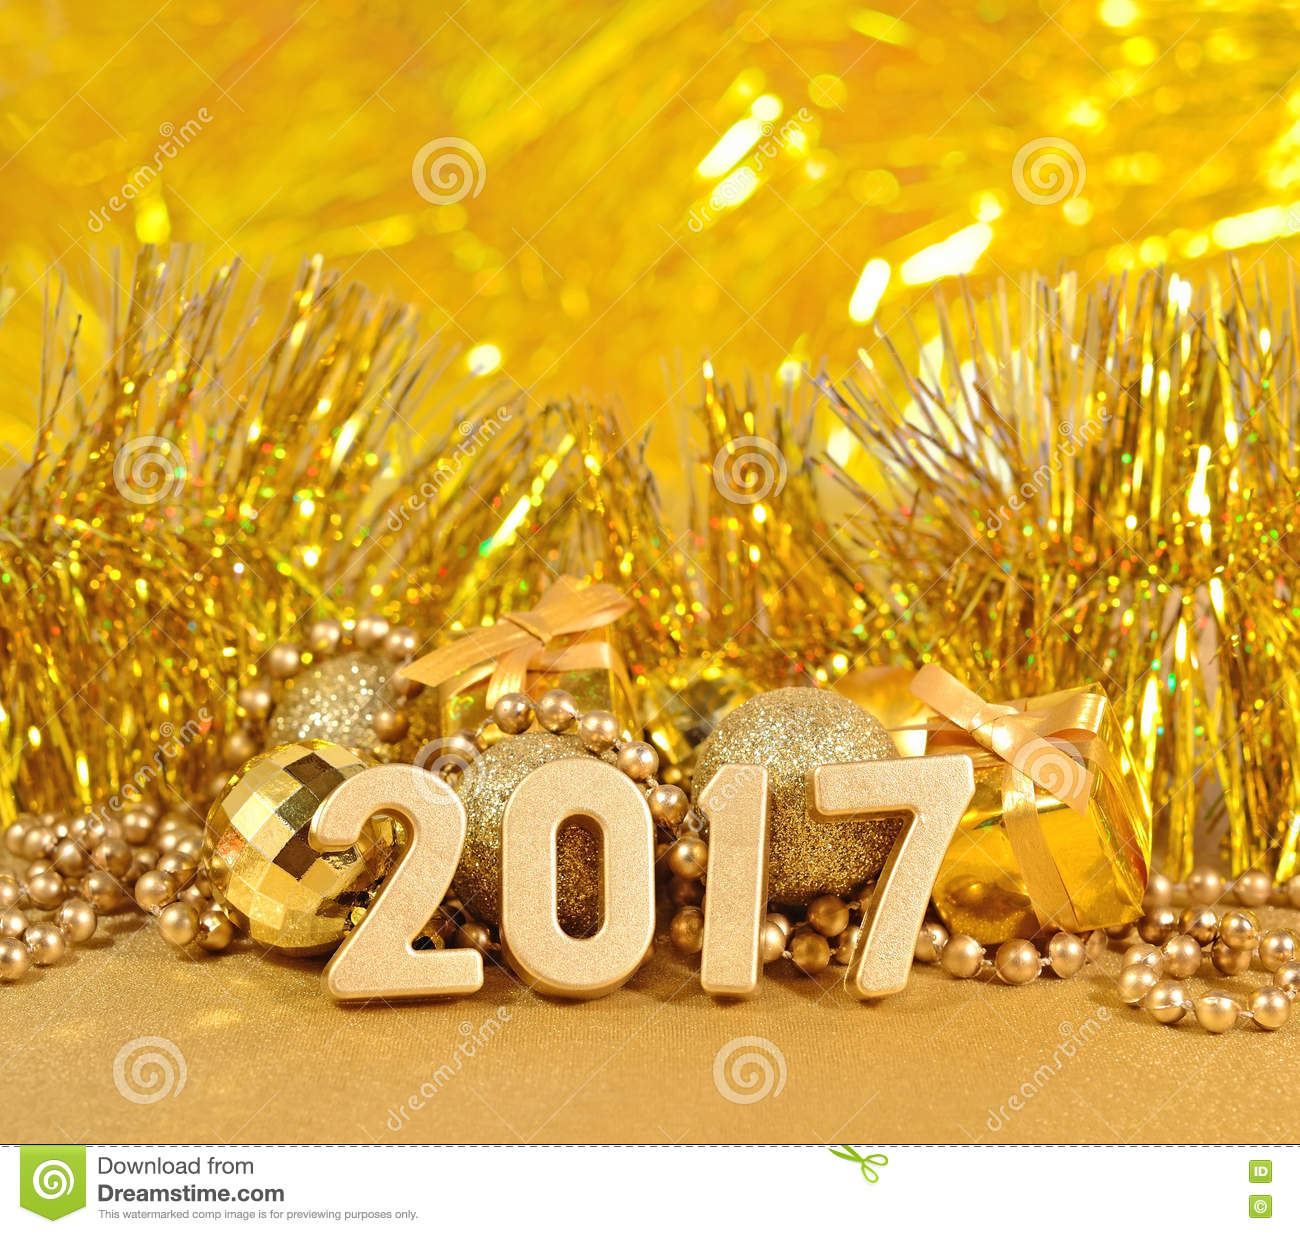 download 2017 year golden figures and golden christmas decorations stock image image of gift